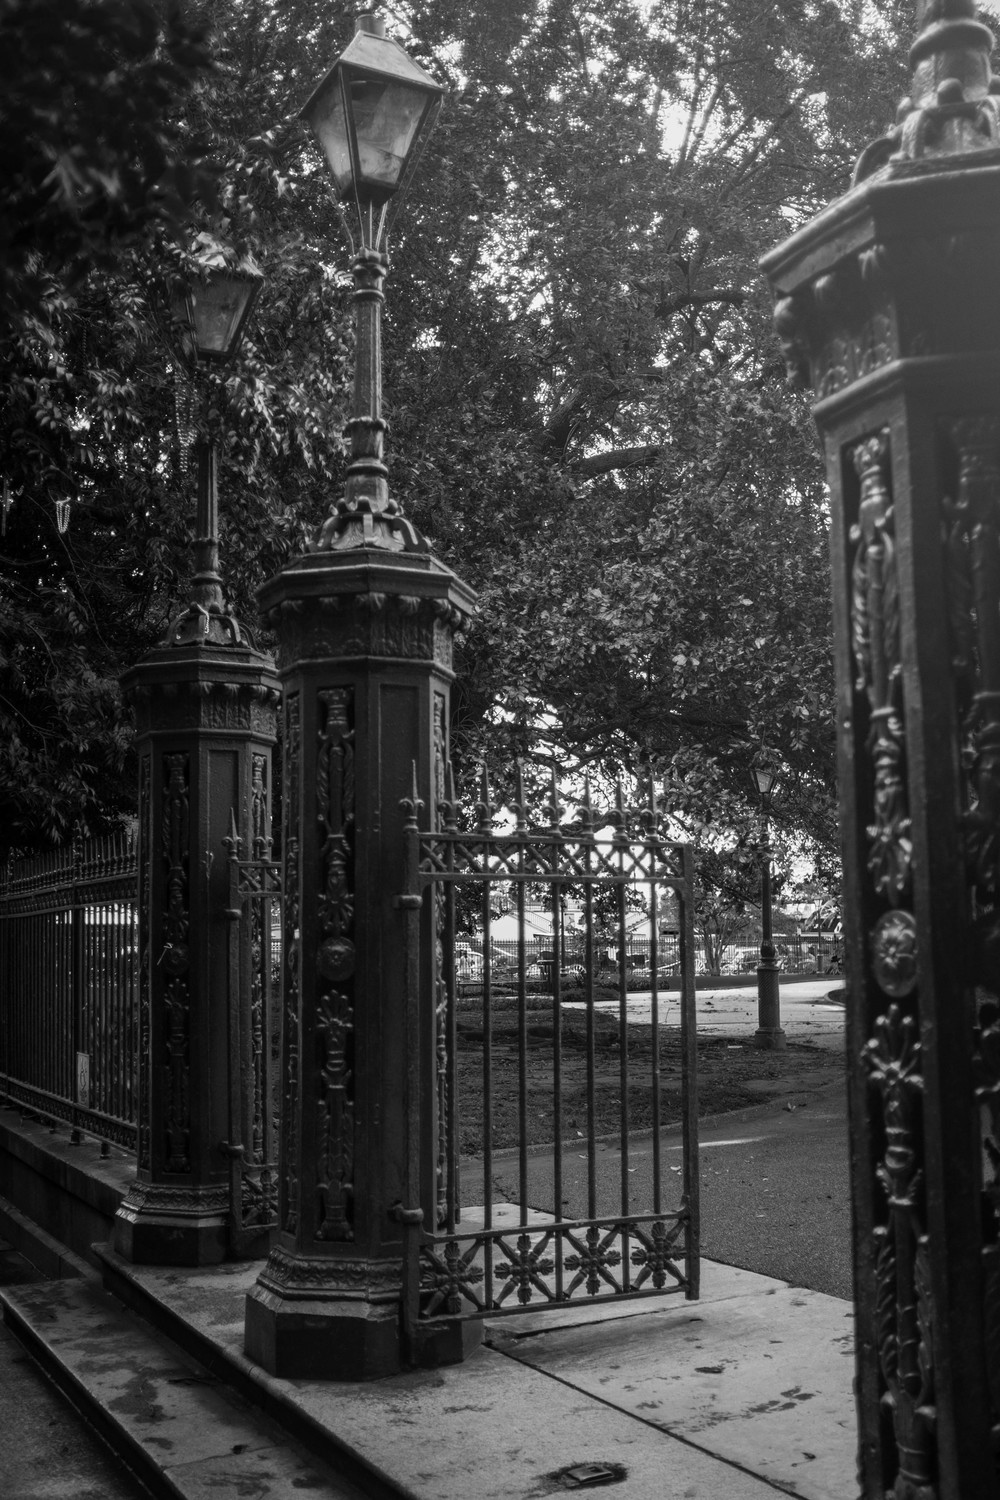 Gate to Jackson Square New Orleans, LA Fuji X100T 6.16